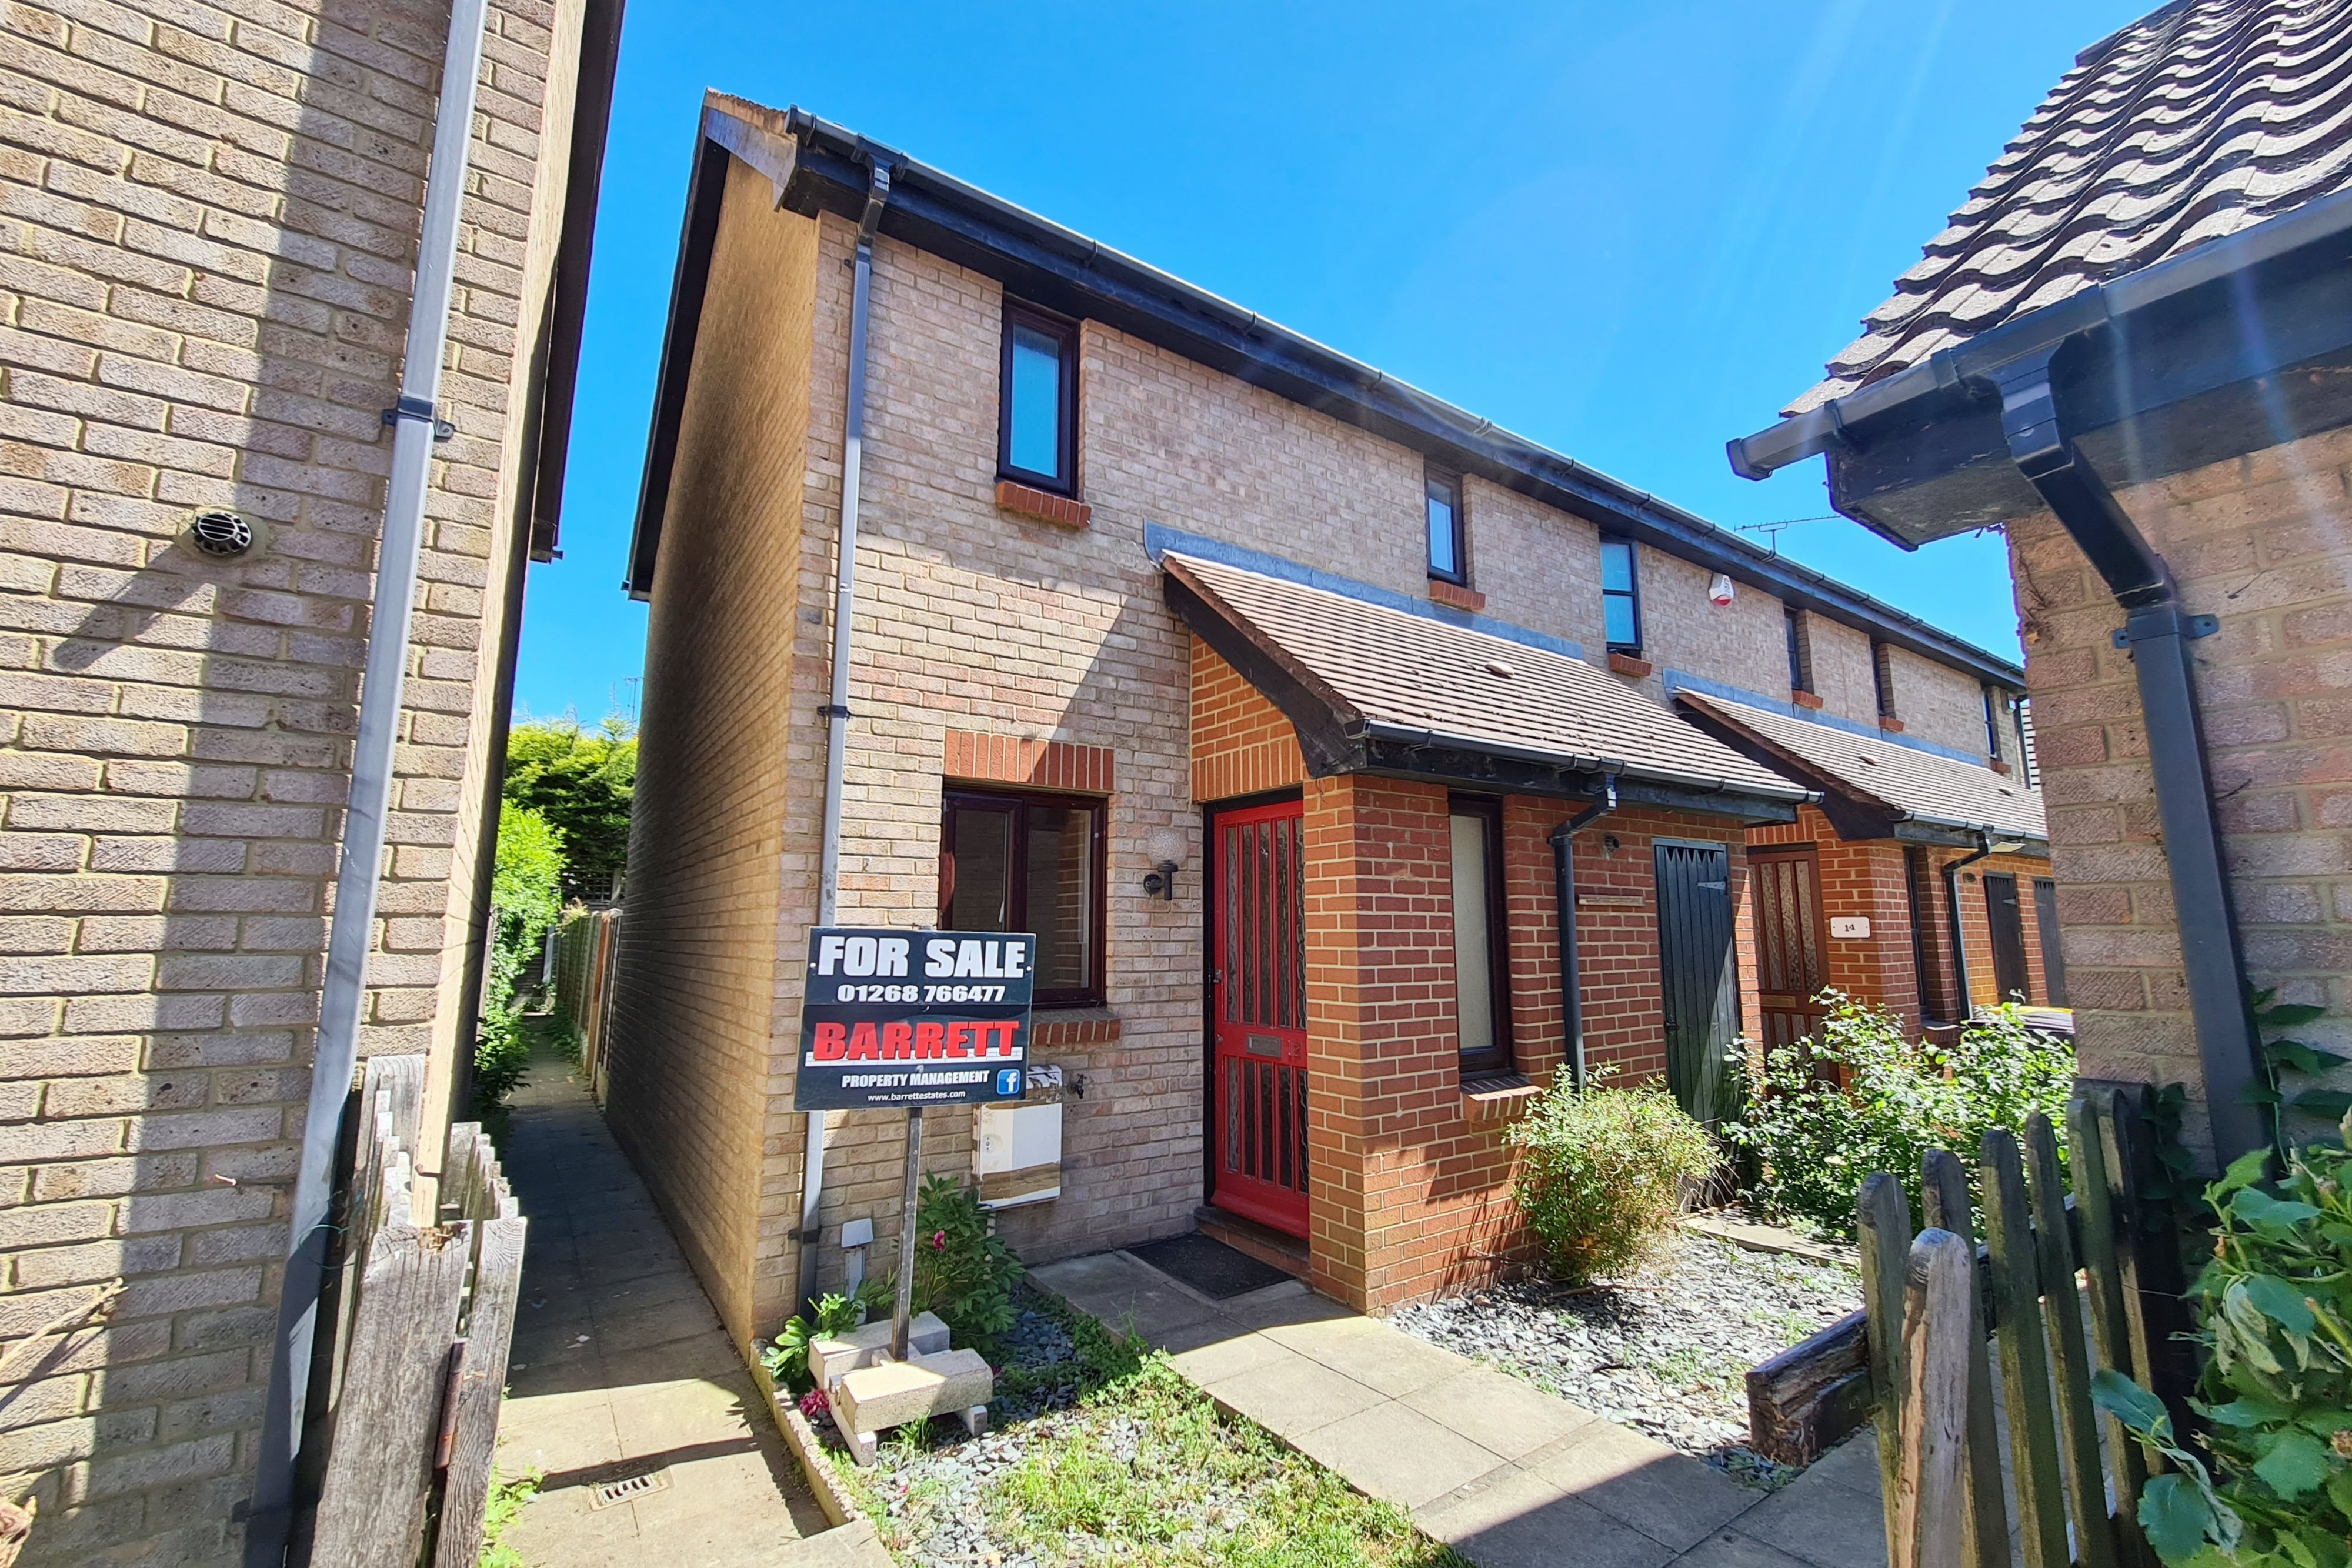 2 bed house for sale in Bristol Close, Rayleigh, SS6